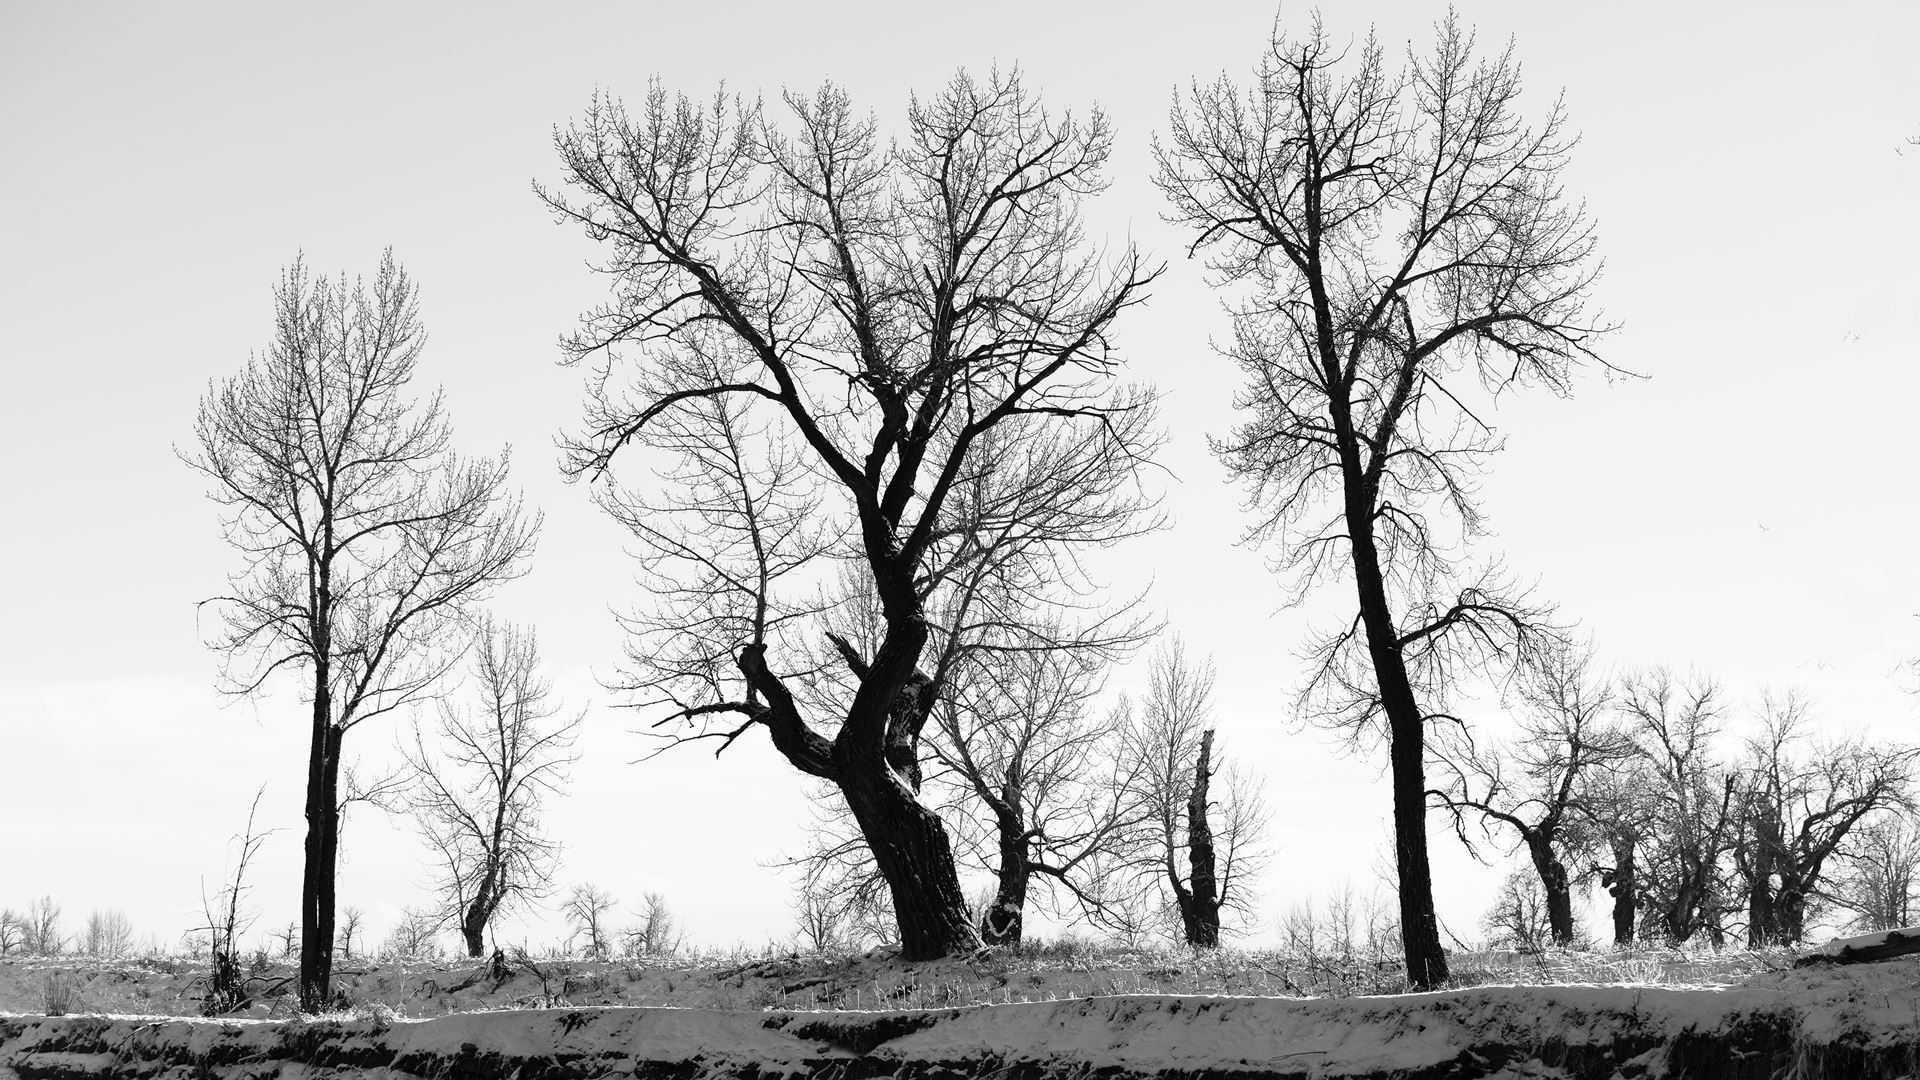 Black & white photo of bare trees and sky